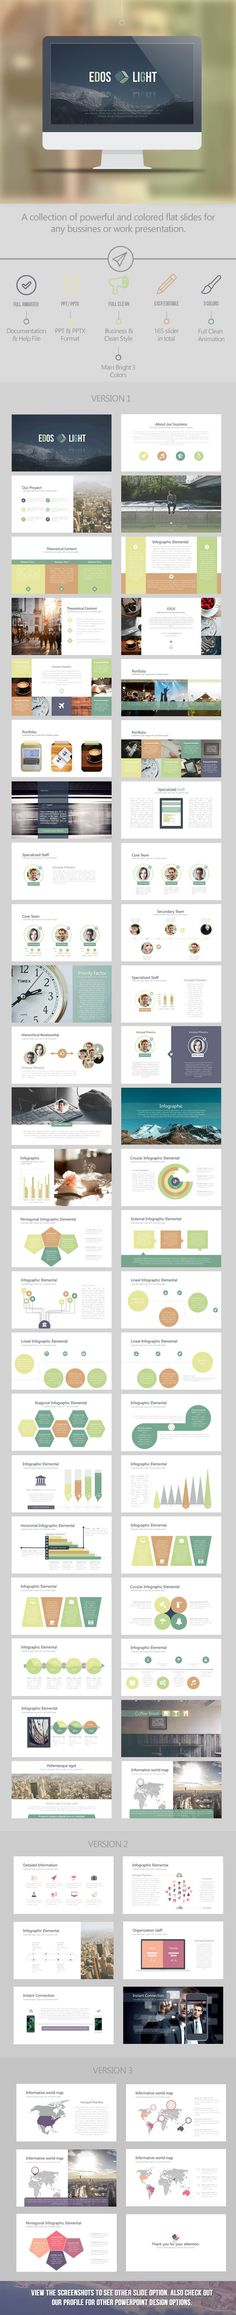 Edos Light Business PowerPoint Template / Theme / Presentation / Slides / Background / Power Point #powerpoint #template #theme